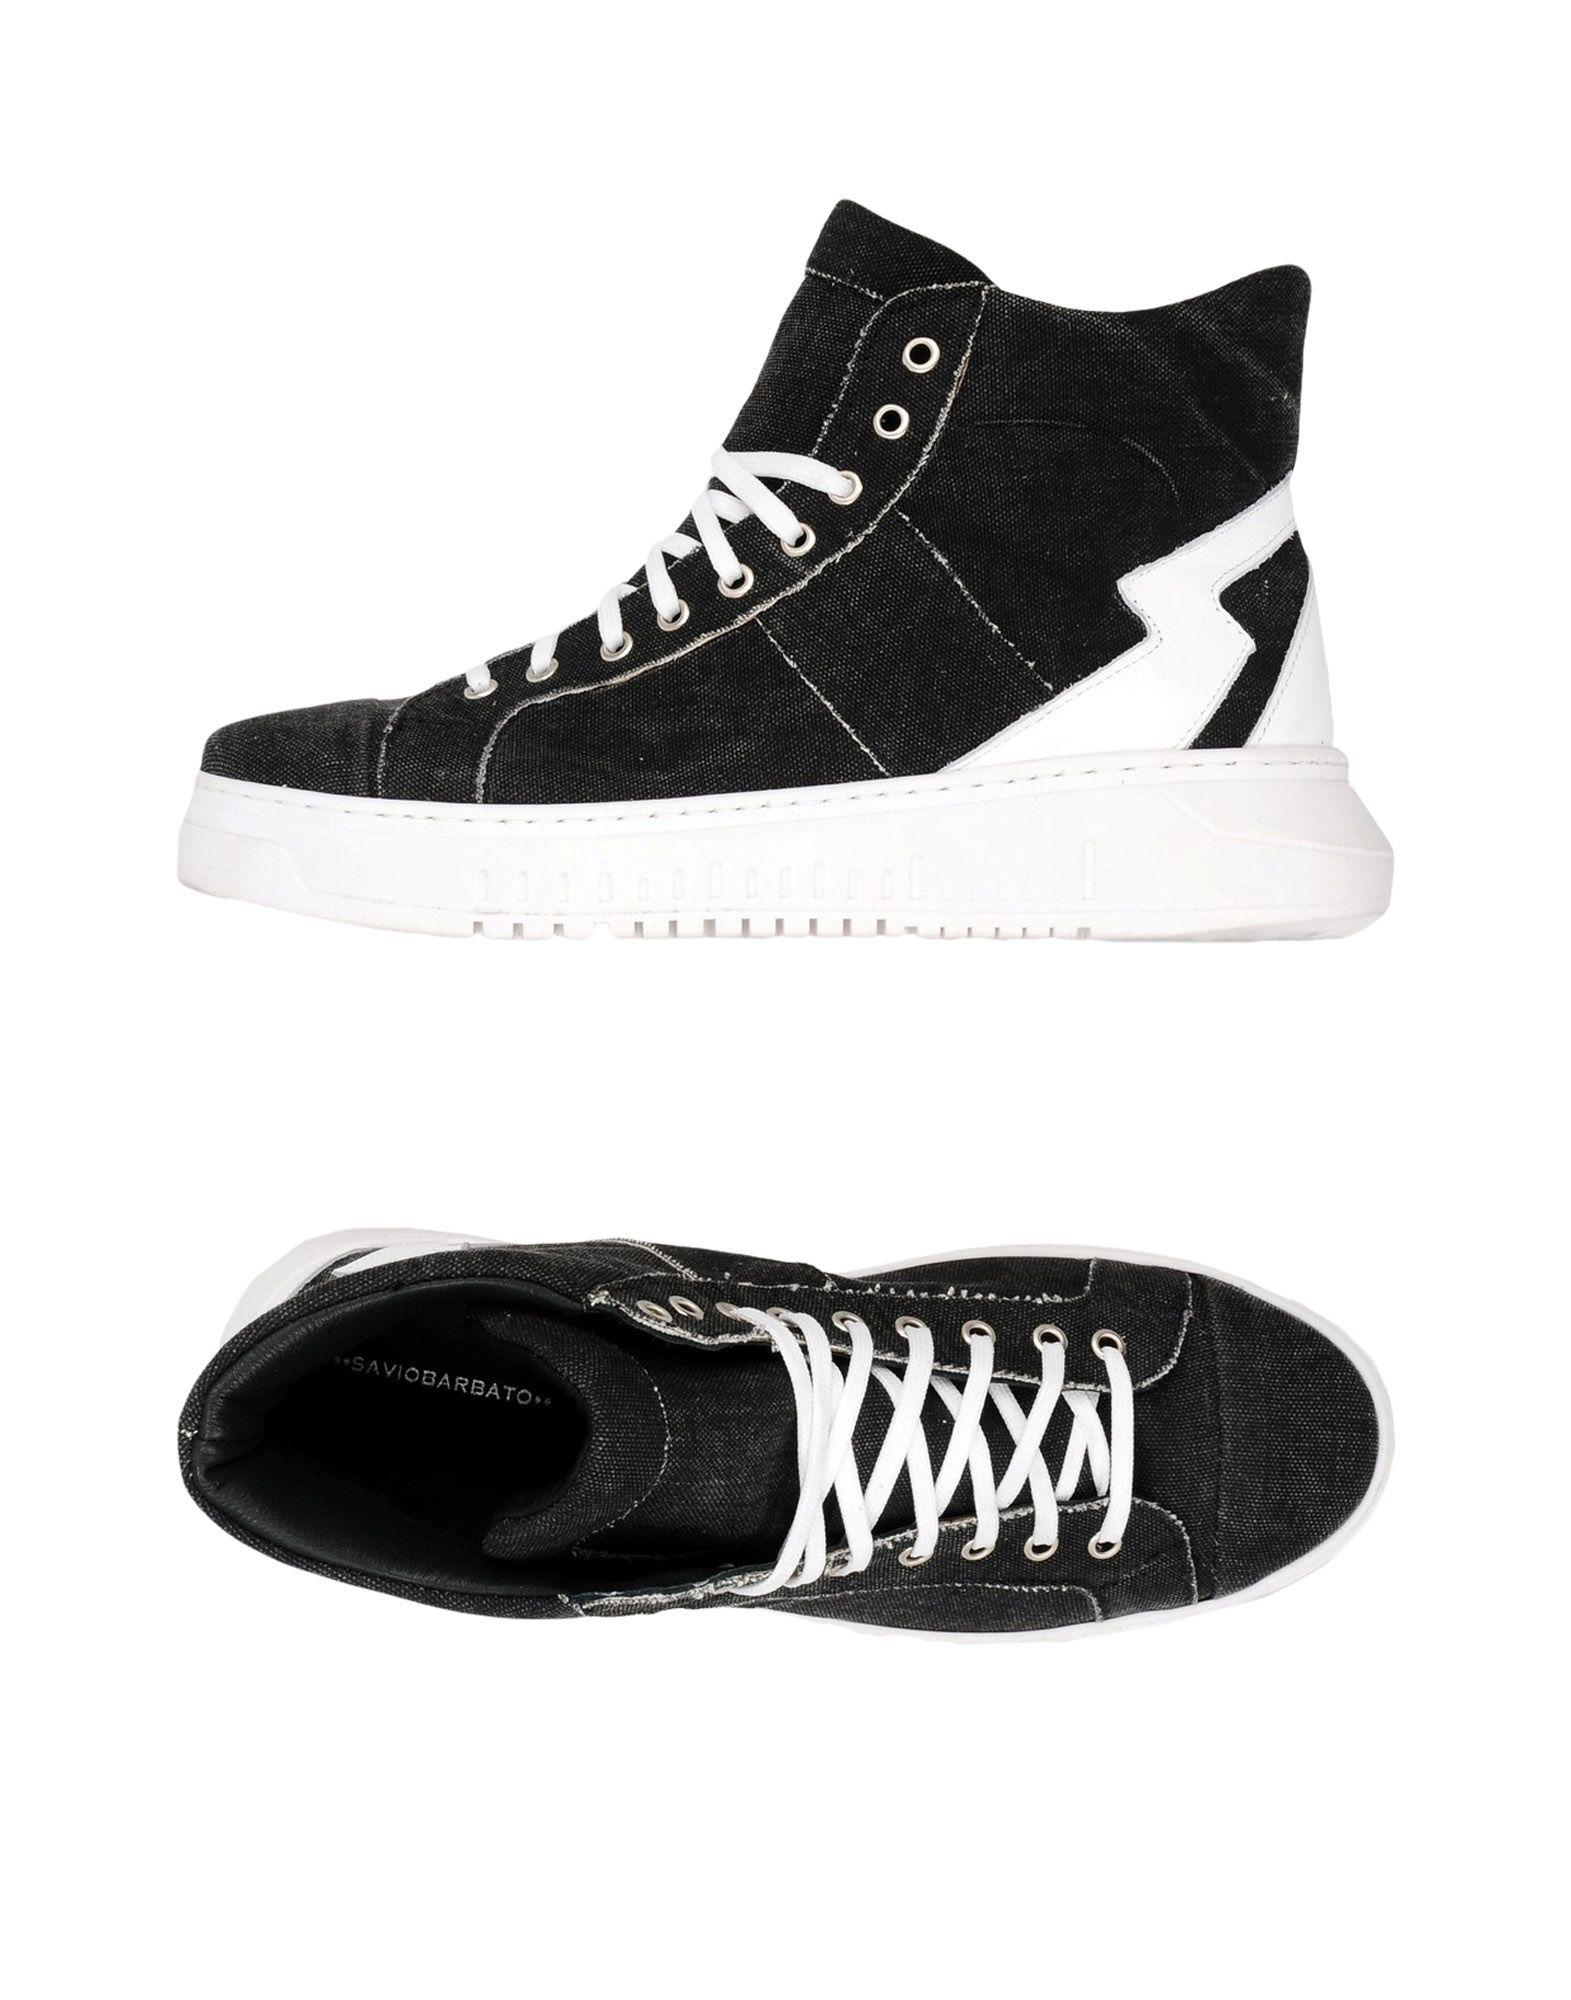 FOOTWEAR - Low-tops & sneakers Savio Barbato 3B0J1lzvDe